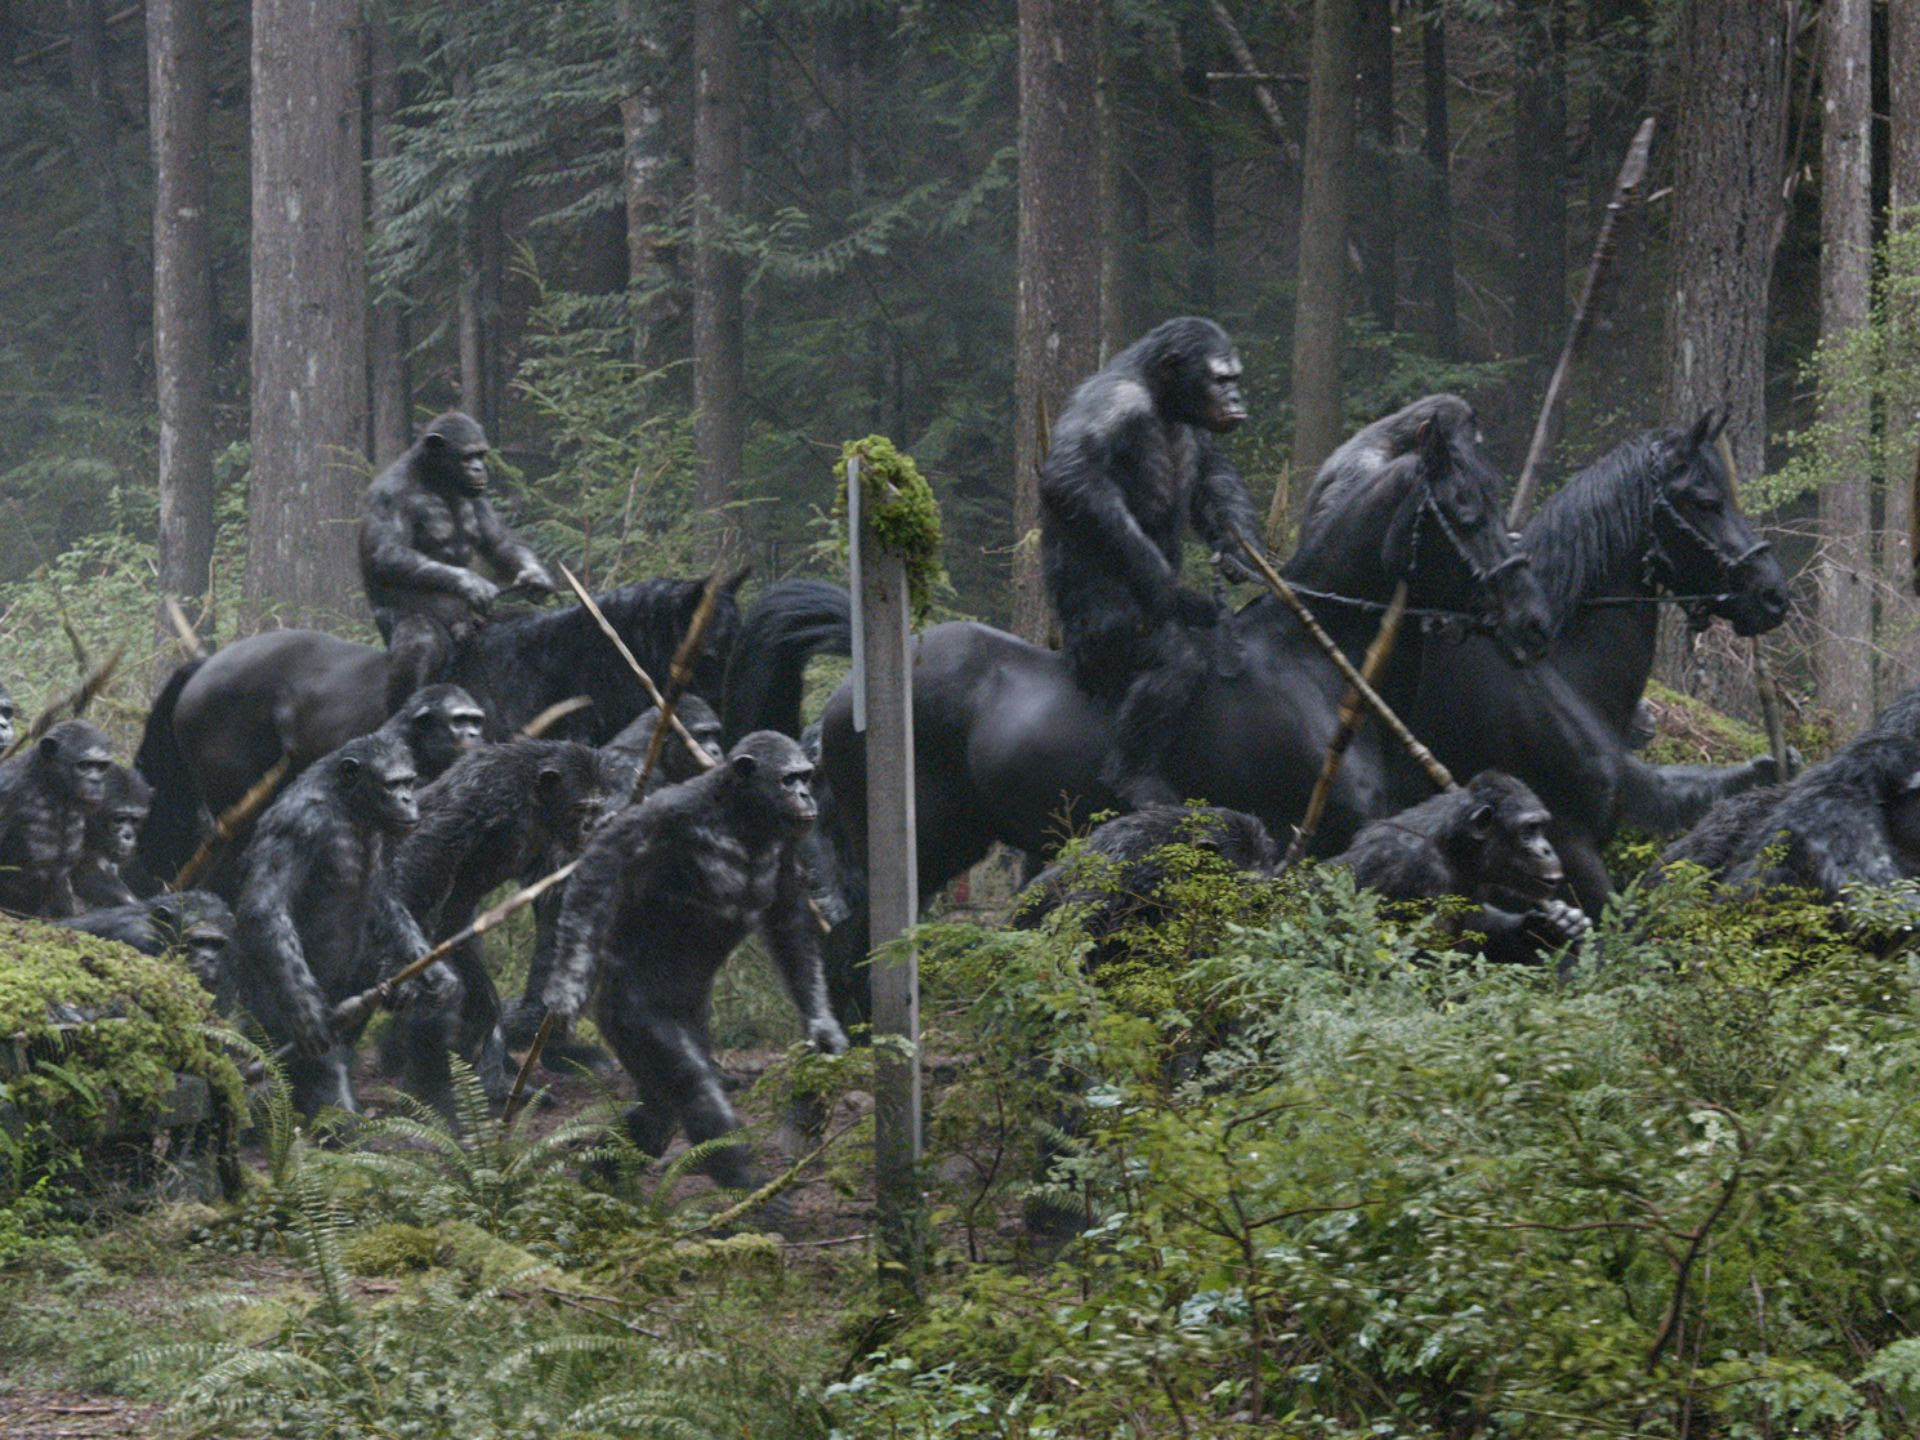 Dawn Of The Planet Of The Apes Images Reveal An Army Of Apes On